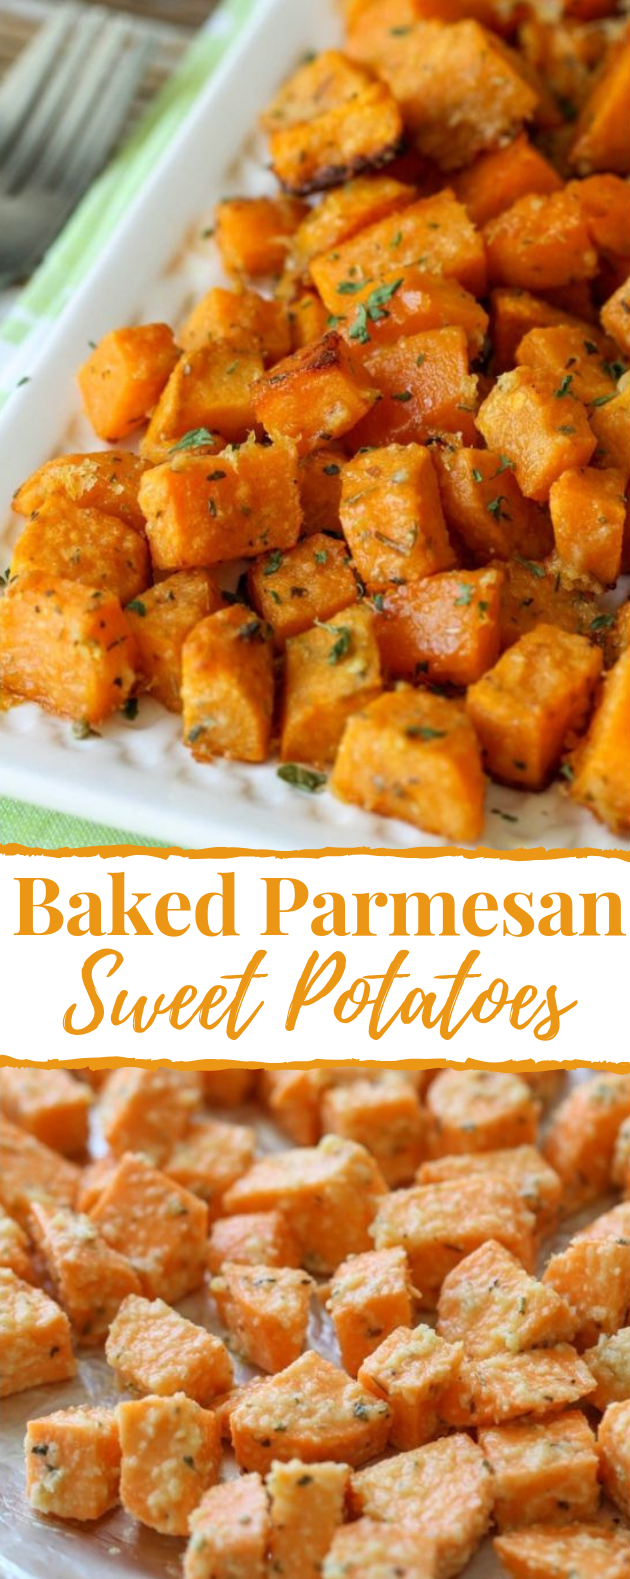 ROASTED SWEET POTATO CUBES #healthy #potatorecipe